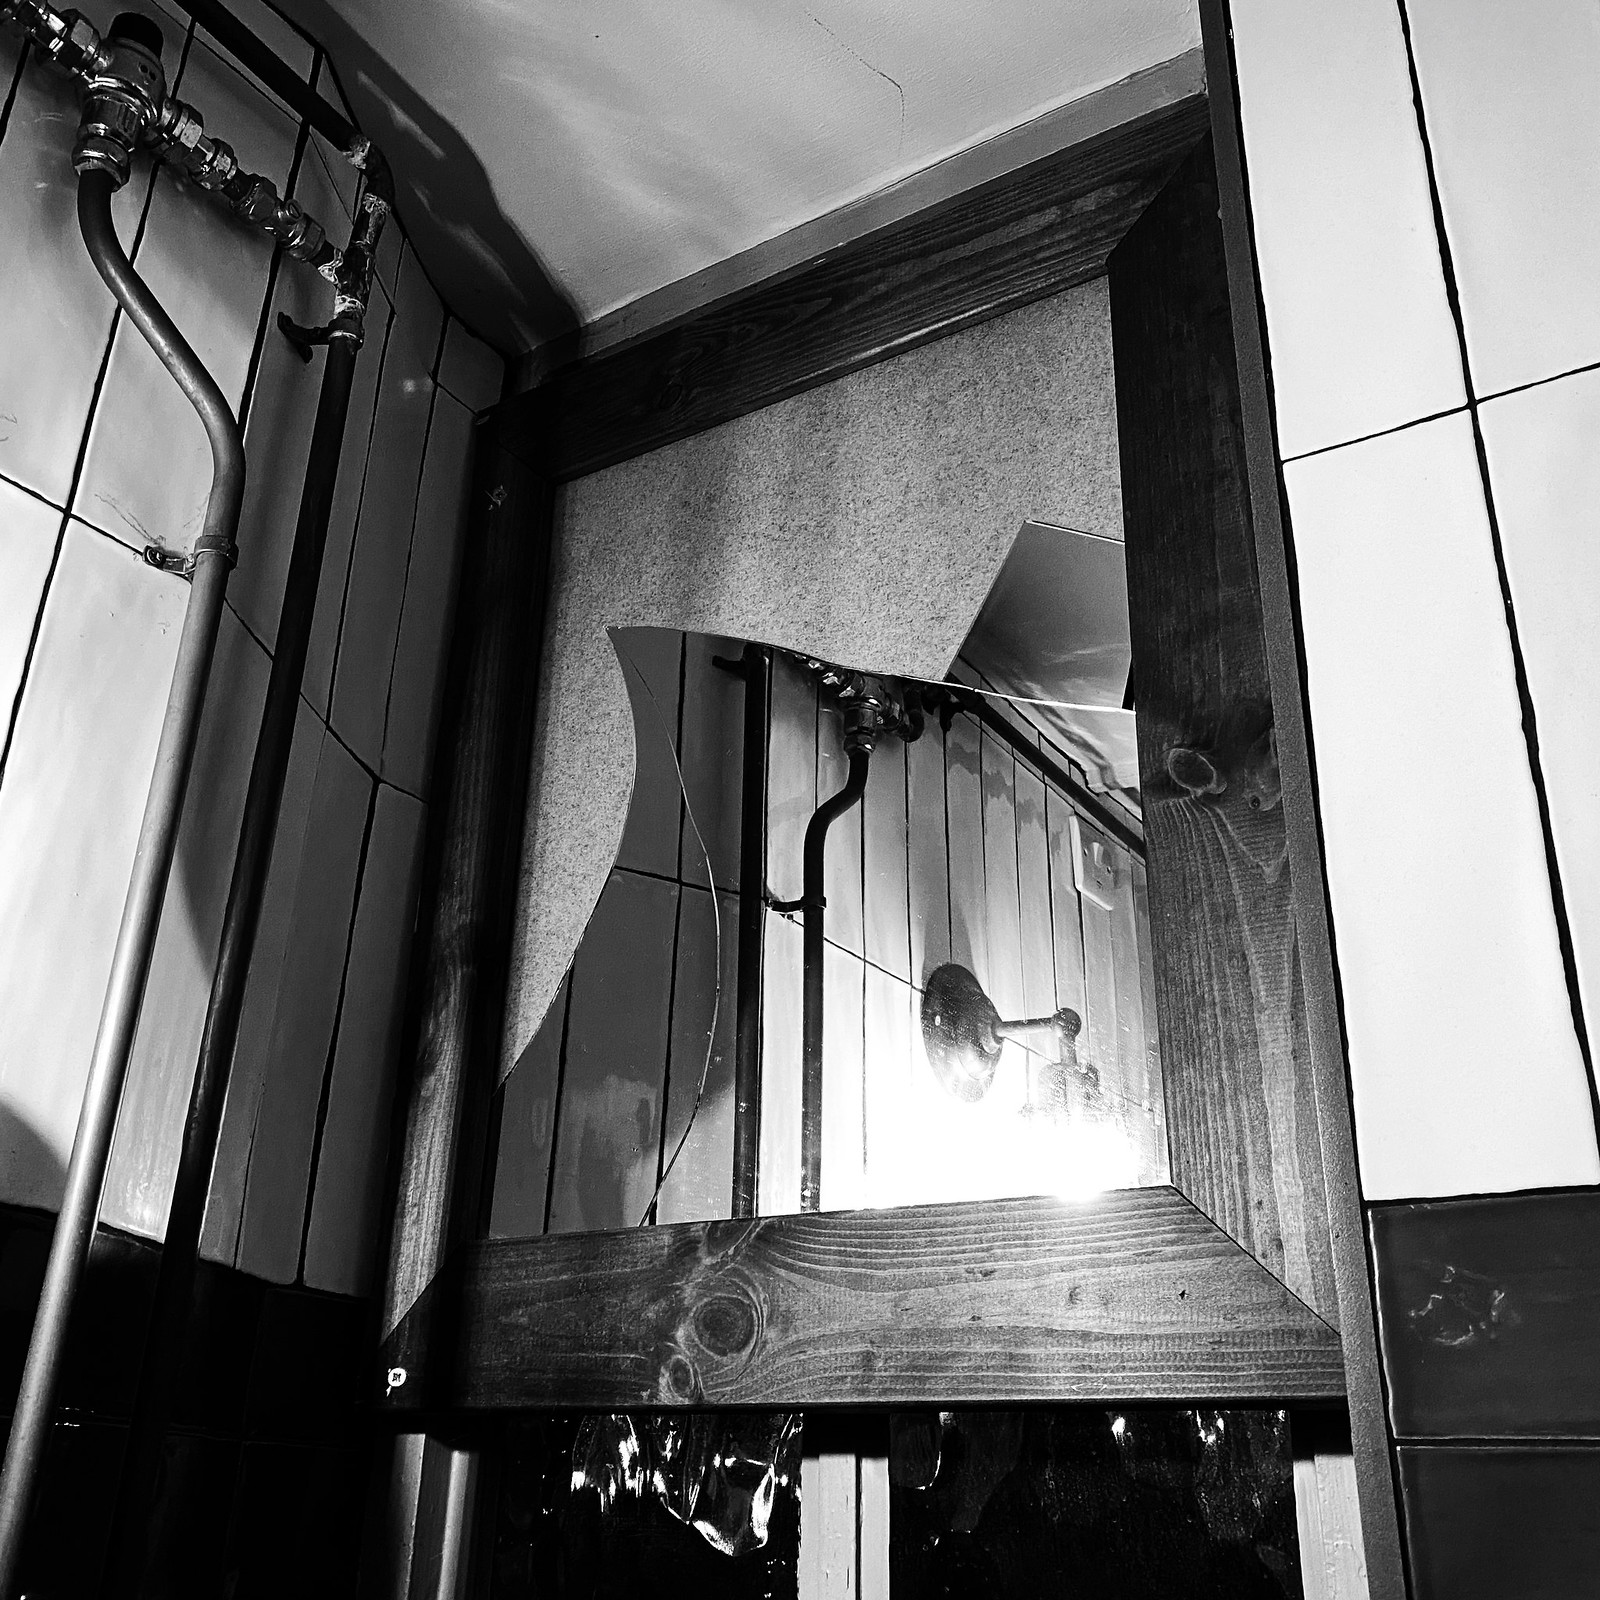 A black and white photo of a broken mirror on a tiled wall.